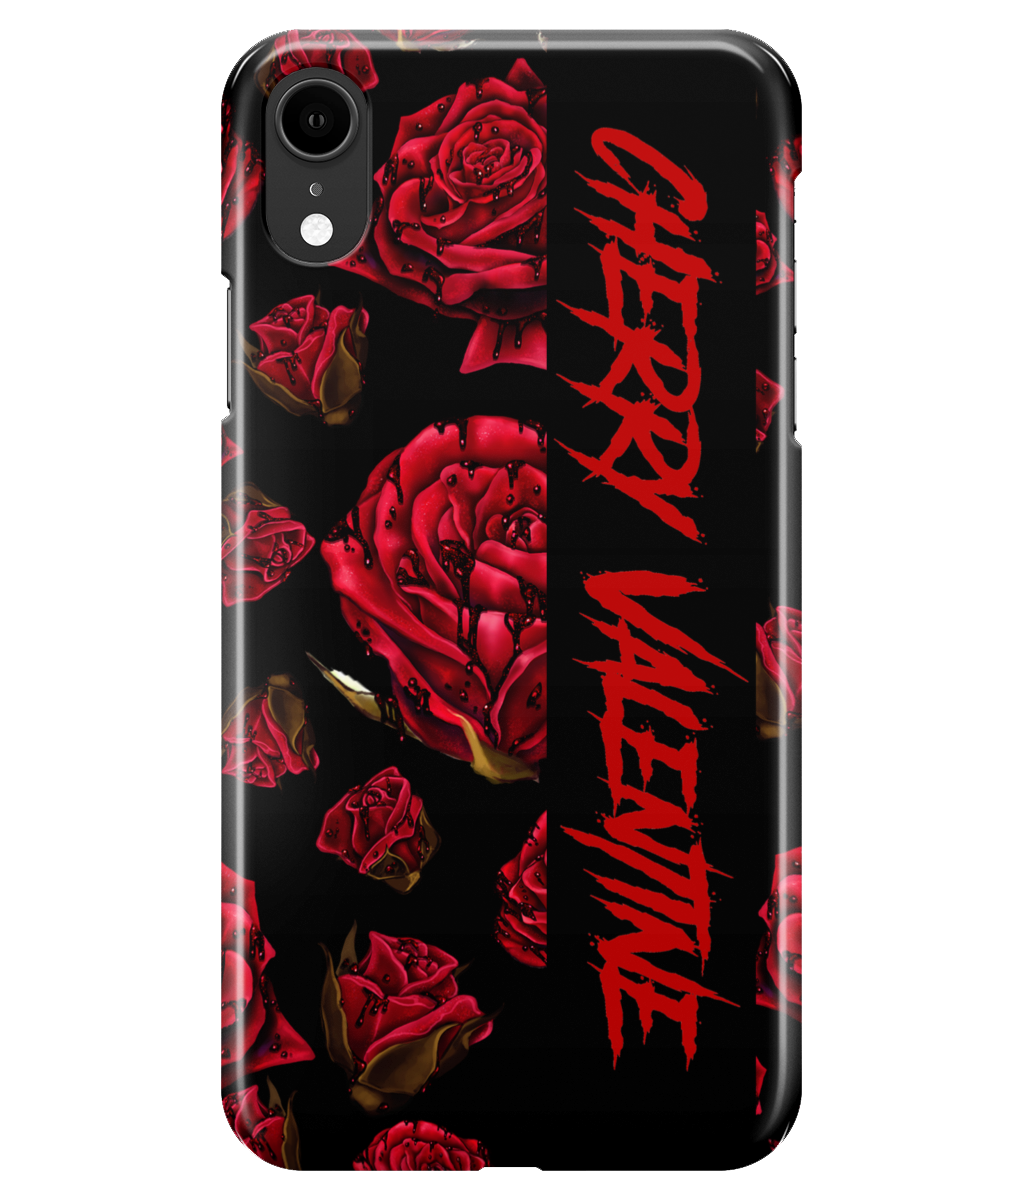 Cherry Valentine - Rose Blood Phone Case